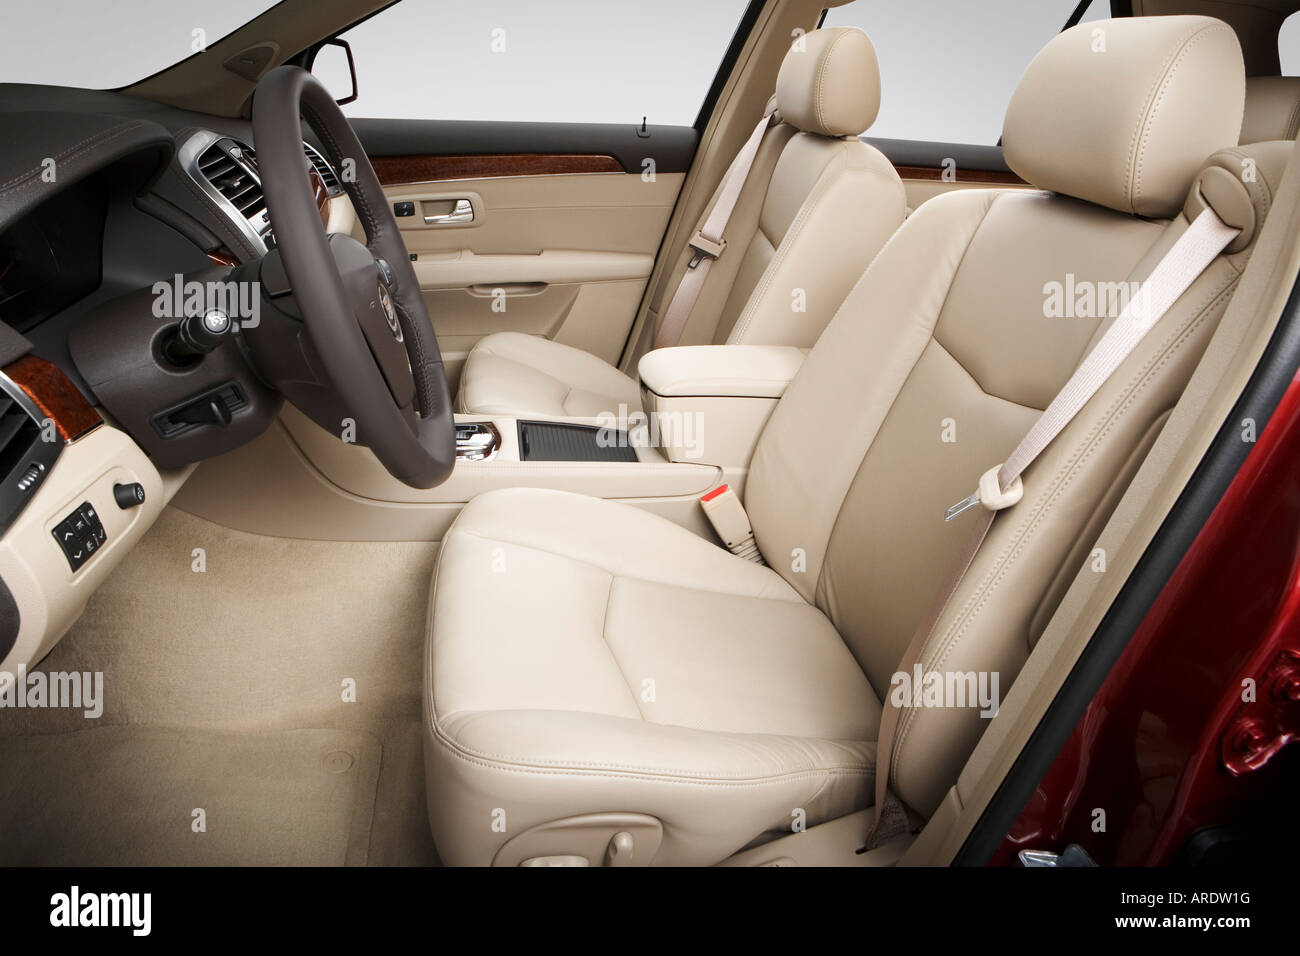 Fabulous 2007 Cadillac Srx Crossover V8 In Red Front Seats Stock Uwap Interior Chair Design Uwaporg